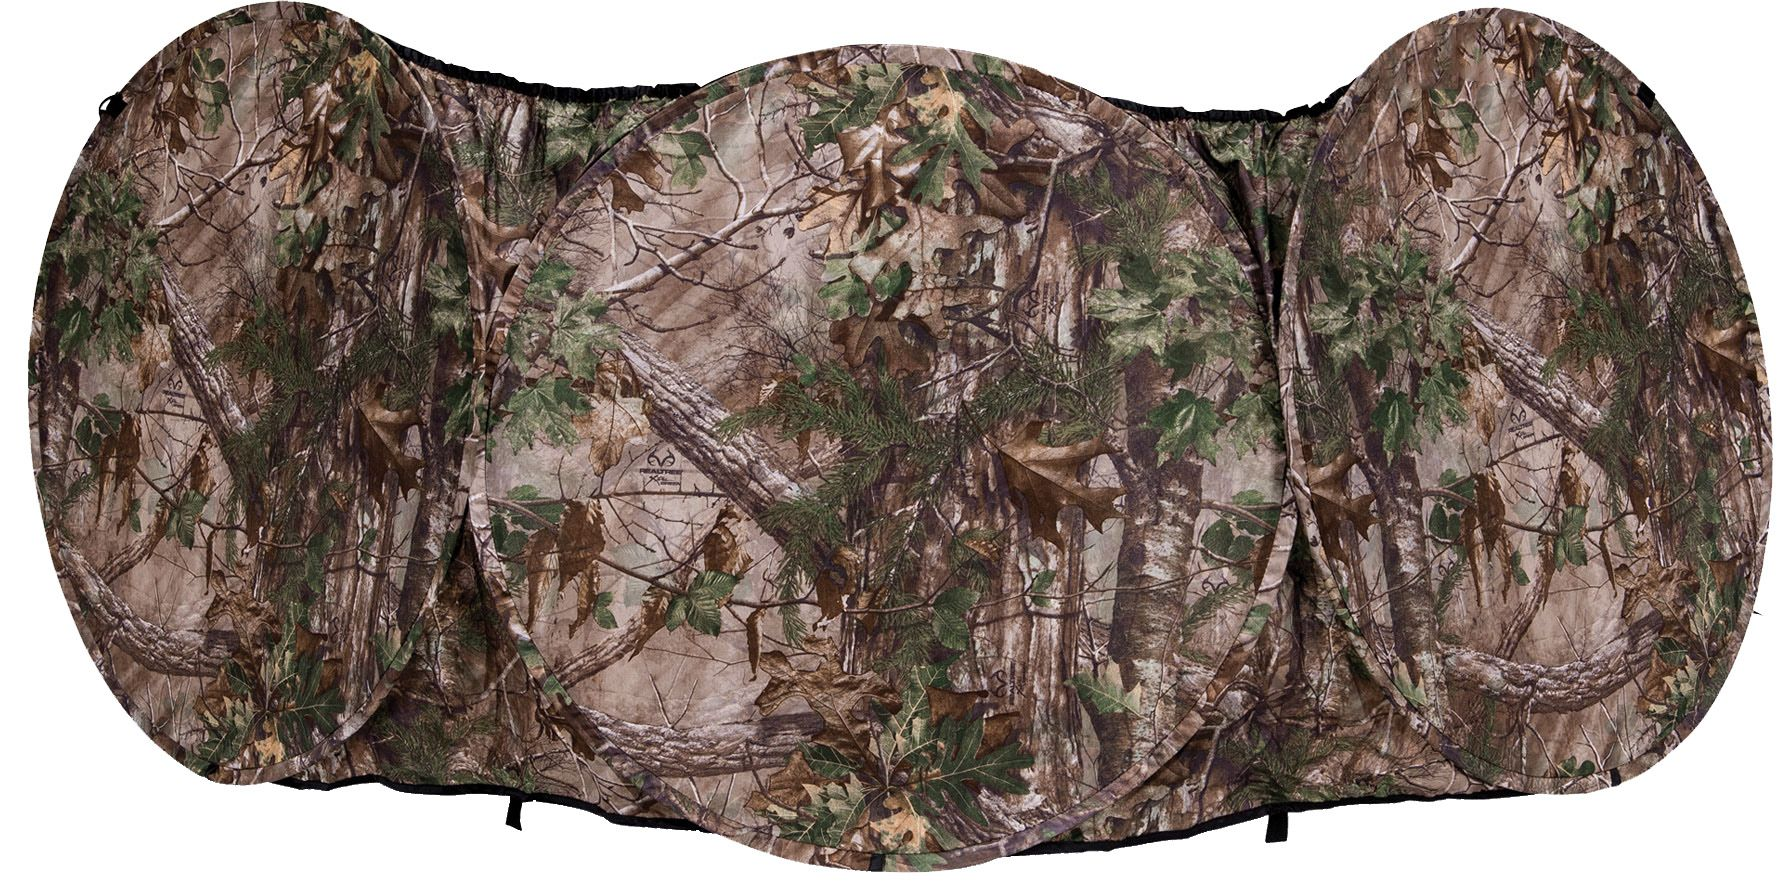 penthouse ground blind watch blinds youtube ameristep hunting review